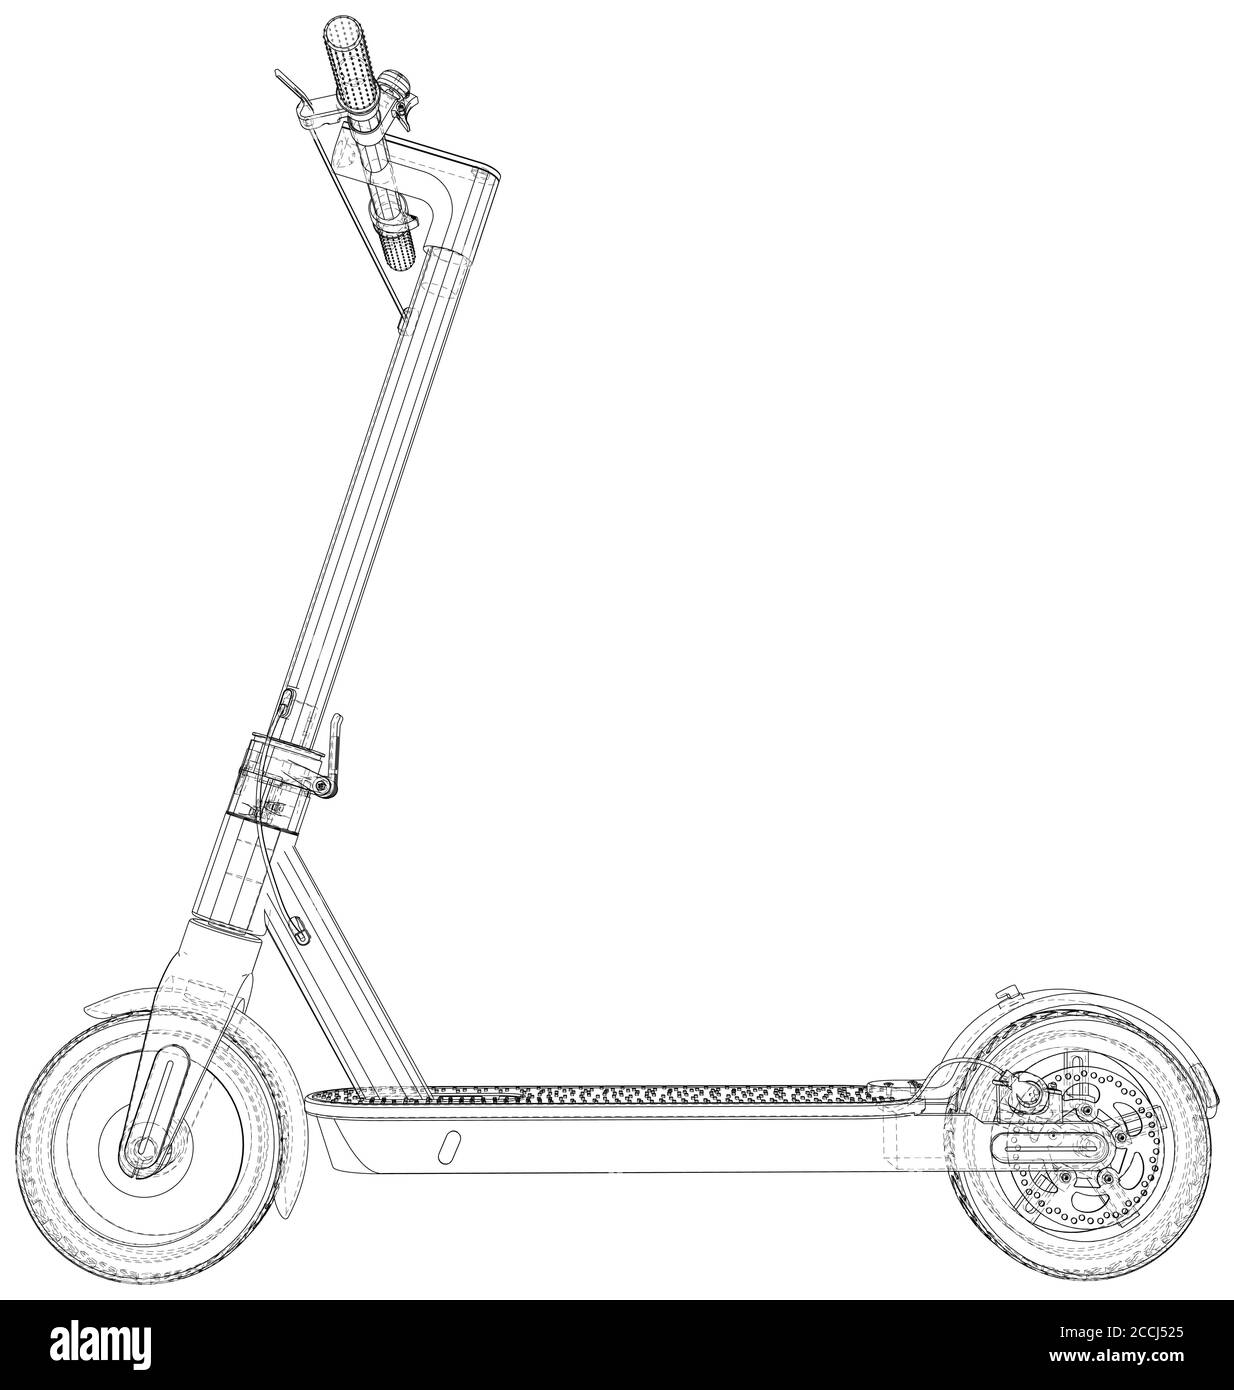 Electric Scooter Electric Scooter On A White Background Electric Transport Stock Vector Image Art Alamy